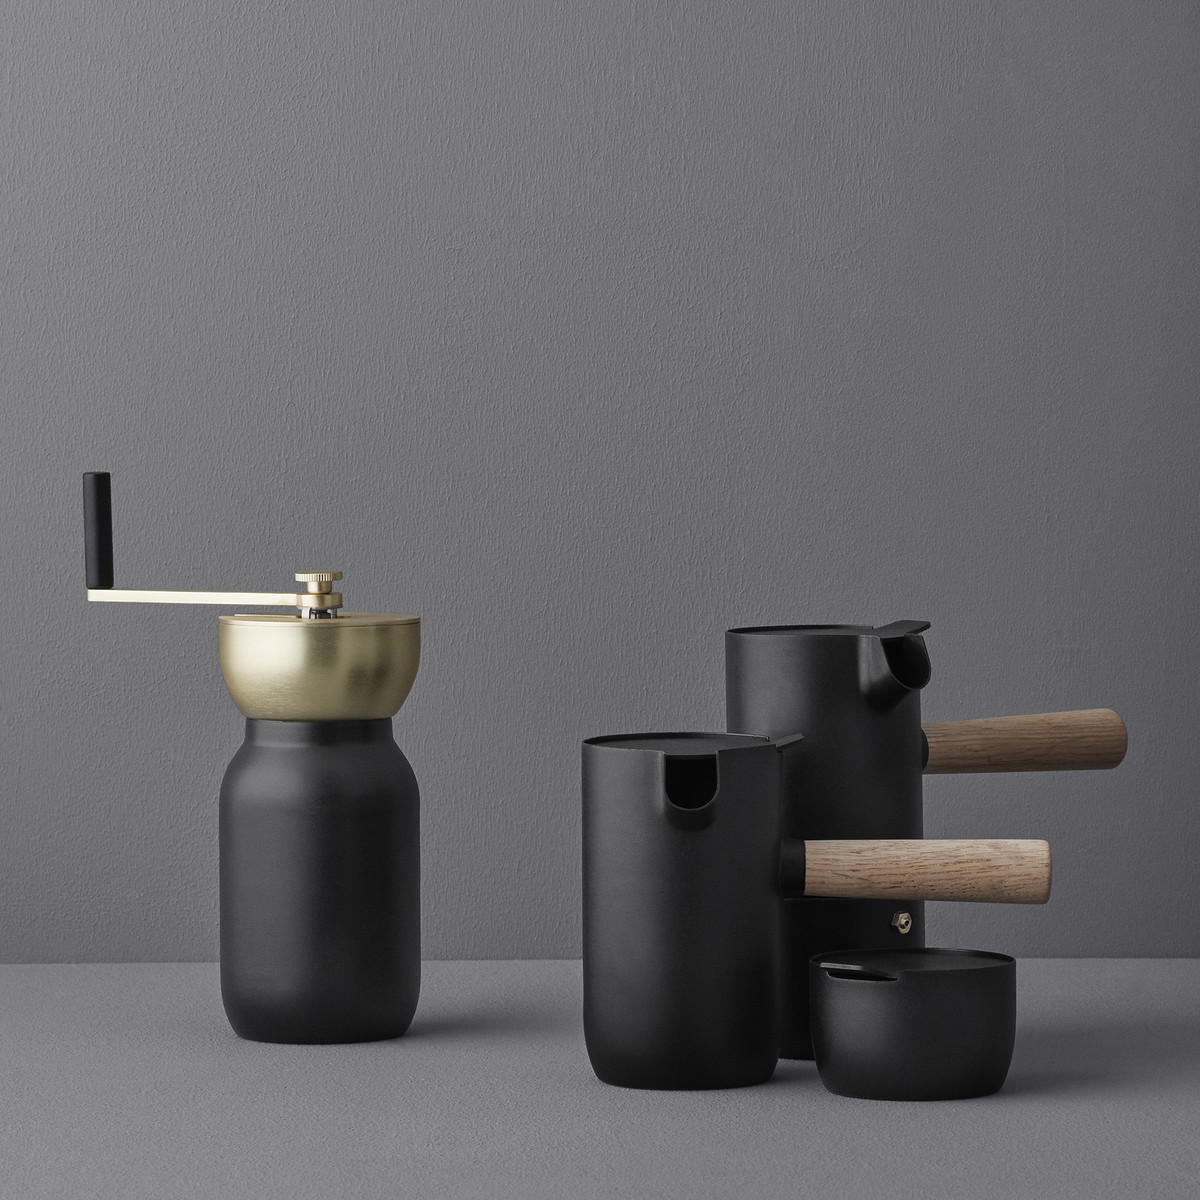 Stelton - Nordic Collar Espresso Brewer, Collar milk jug, Collar coffee grinder, collar sugar bowl